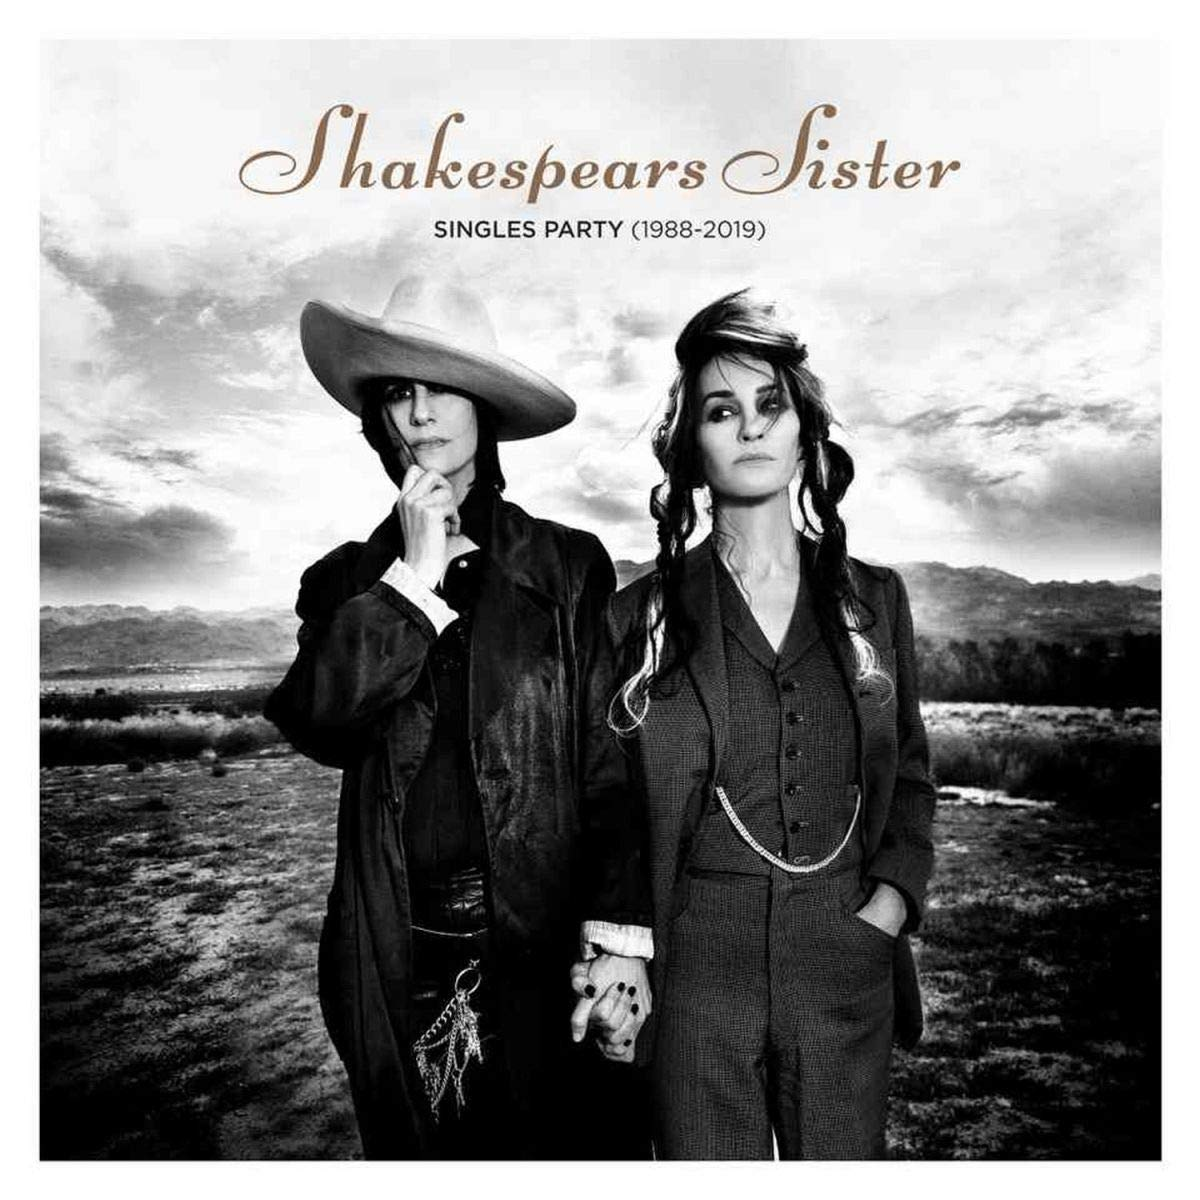 News – Shakespears Sister – Singles Party – All The Queens Horses